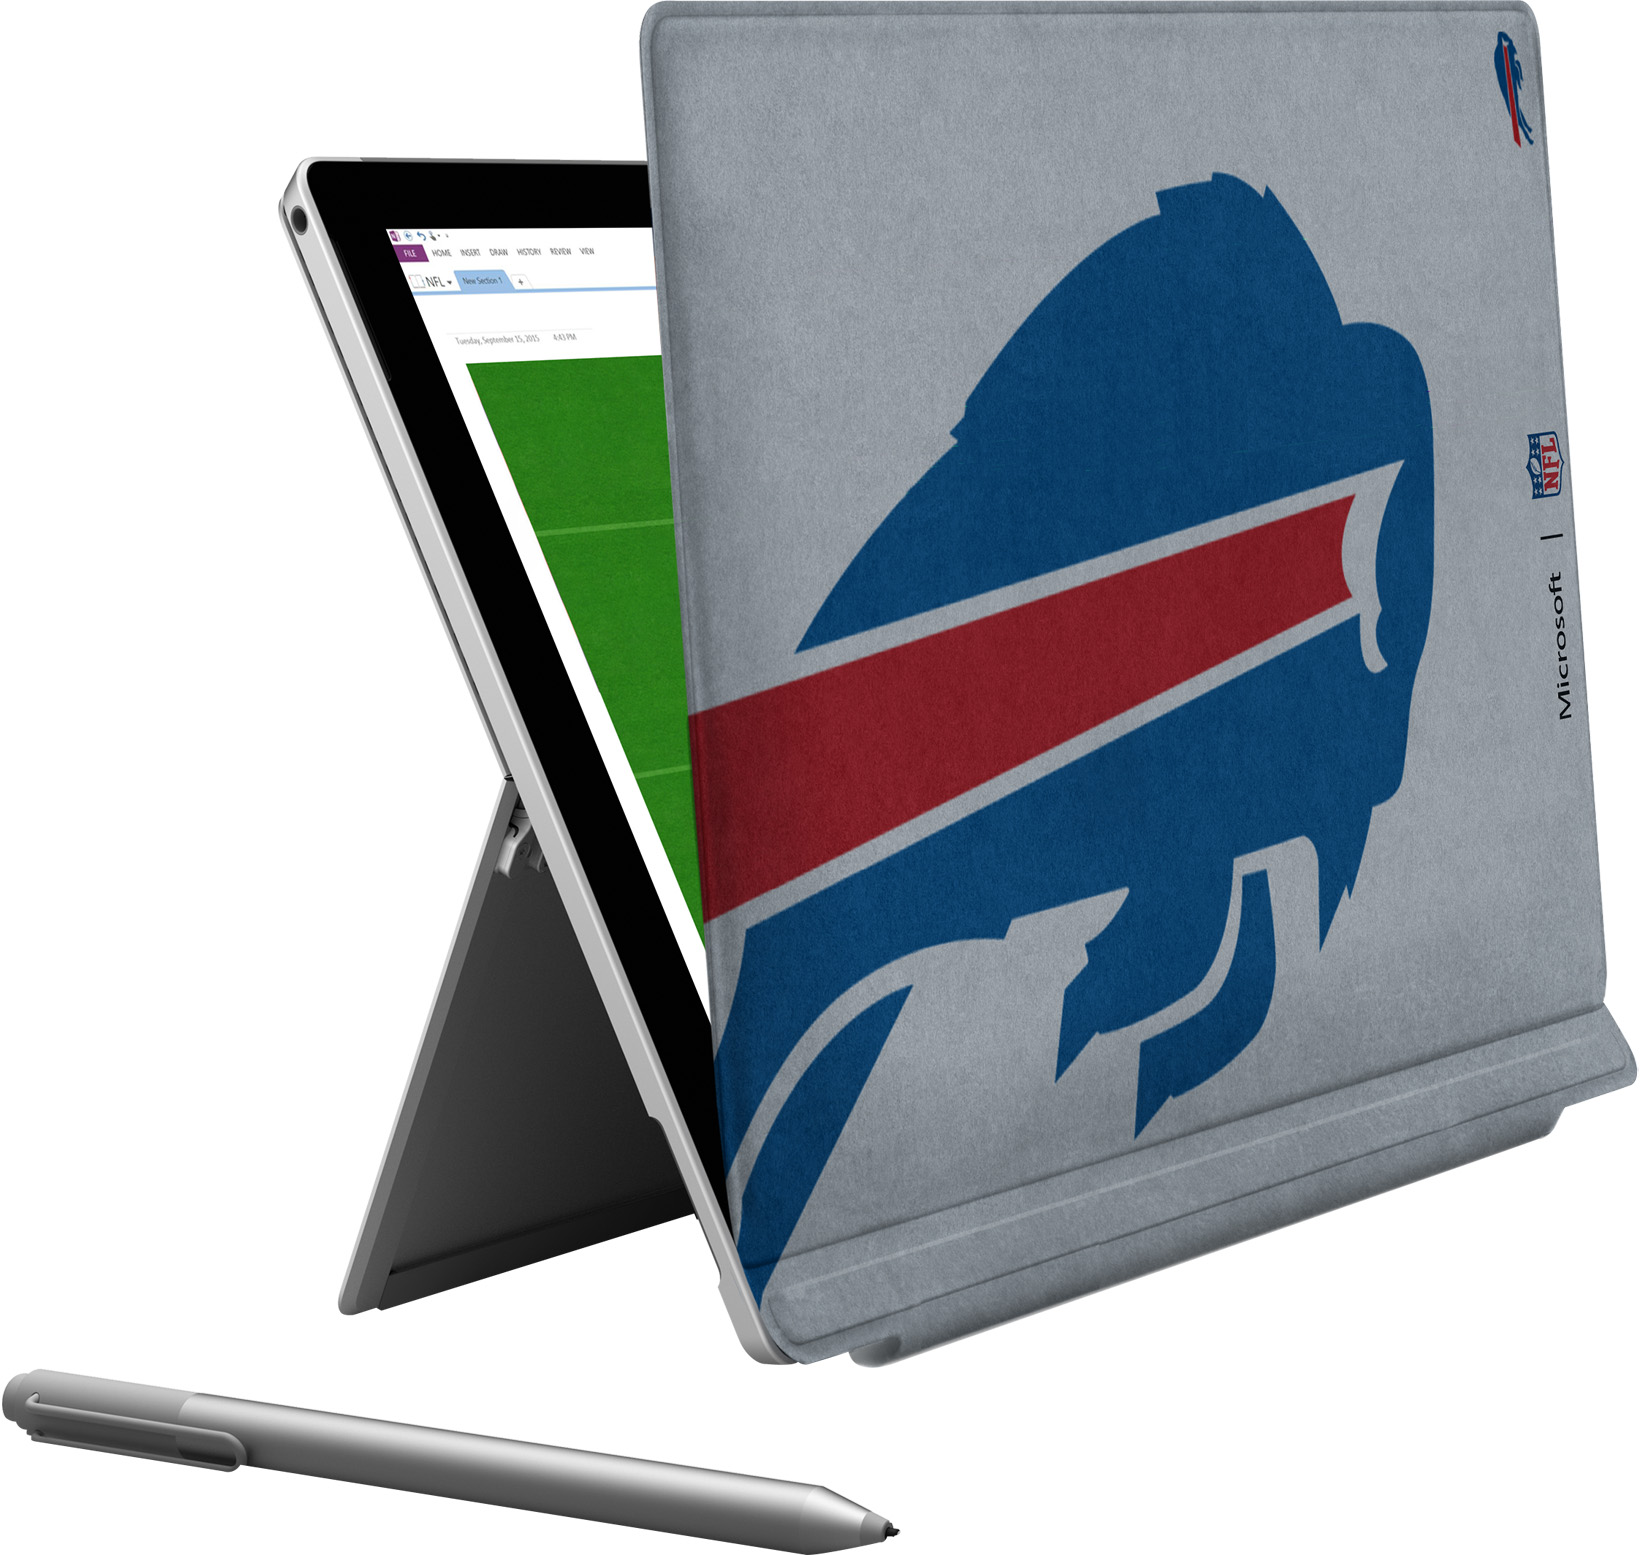 Microsoft Surface Pro 4 Buffalo Bills Type Cover